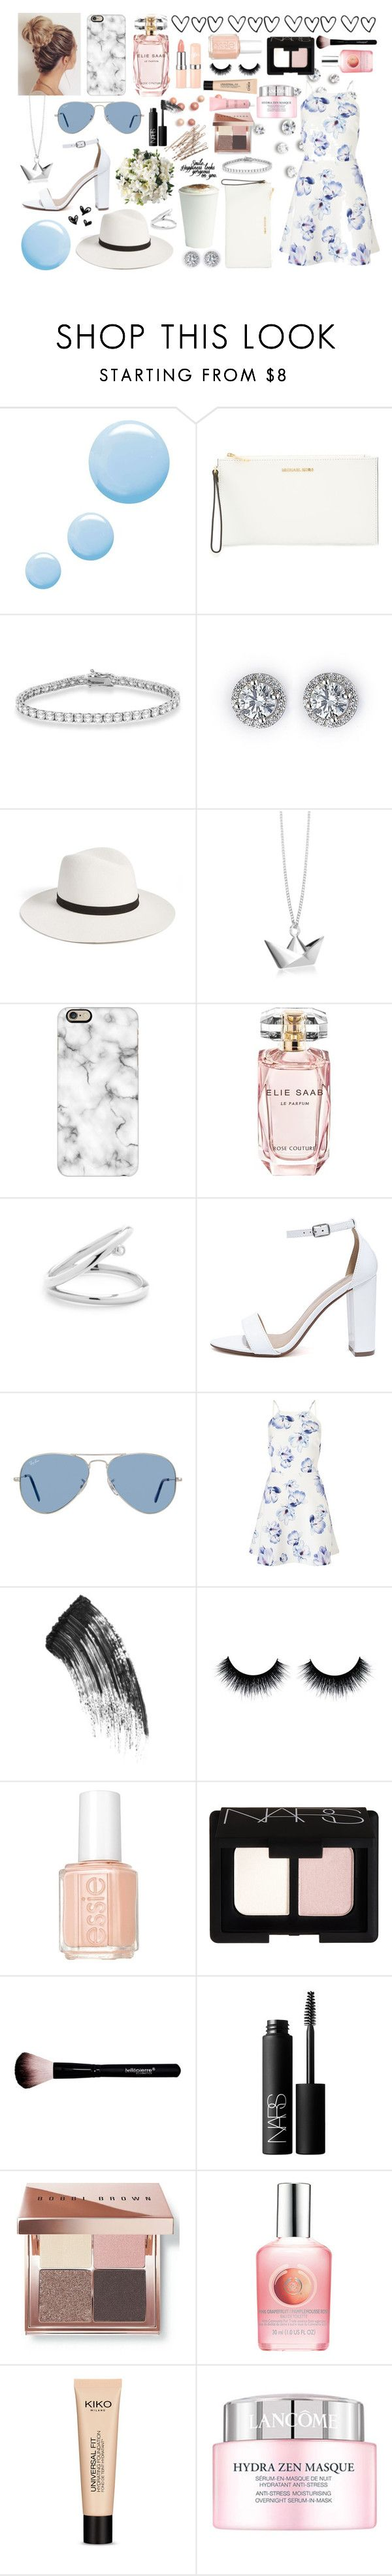 """A Birthday Treat"" by flyingimage ❤ liked on Polyvore featuring Topshop, MICHAEL Michael Kors, Allurez, Janessa Leone, Origami Jewellery, Casetify, Elie Saab, My Delicious, Ray-Ban and Lipsy"